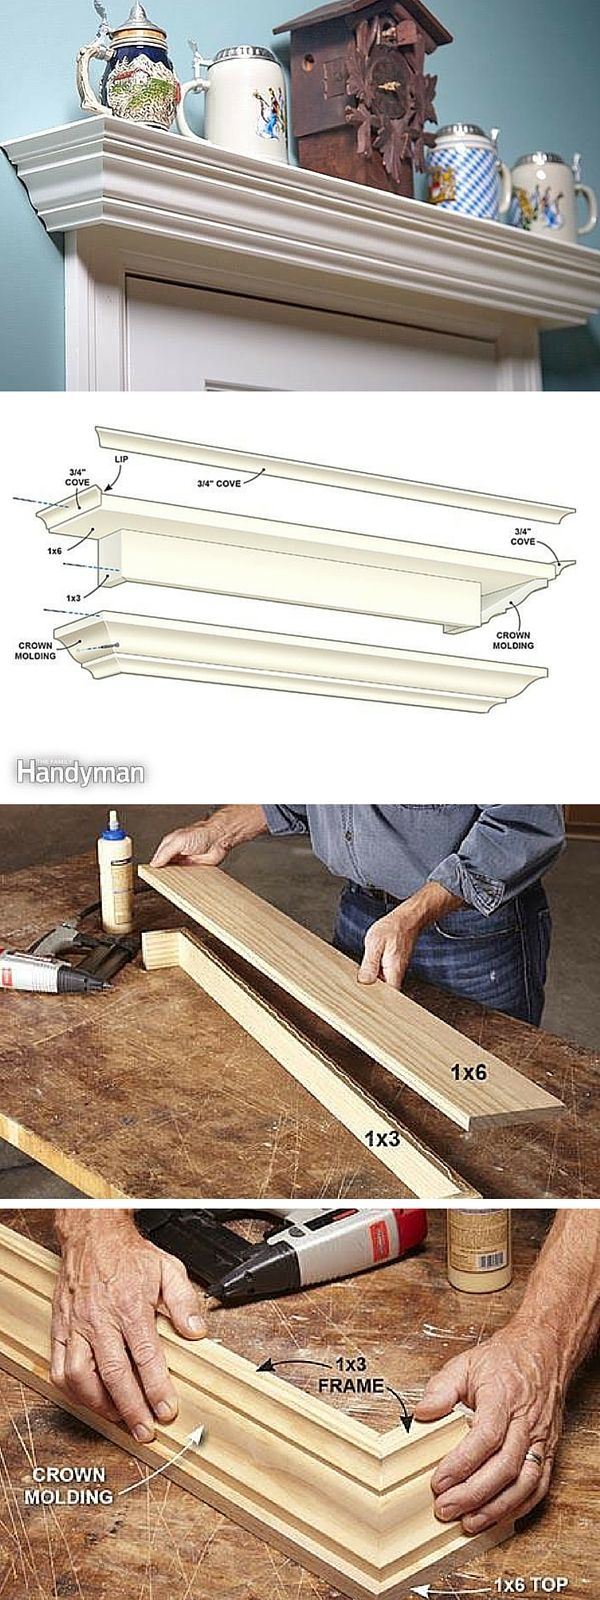 diy storage ideas for a neat home in every room diy home decor